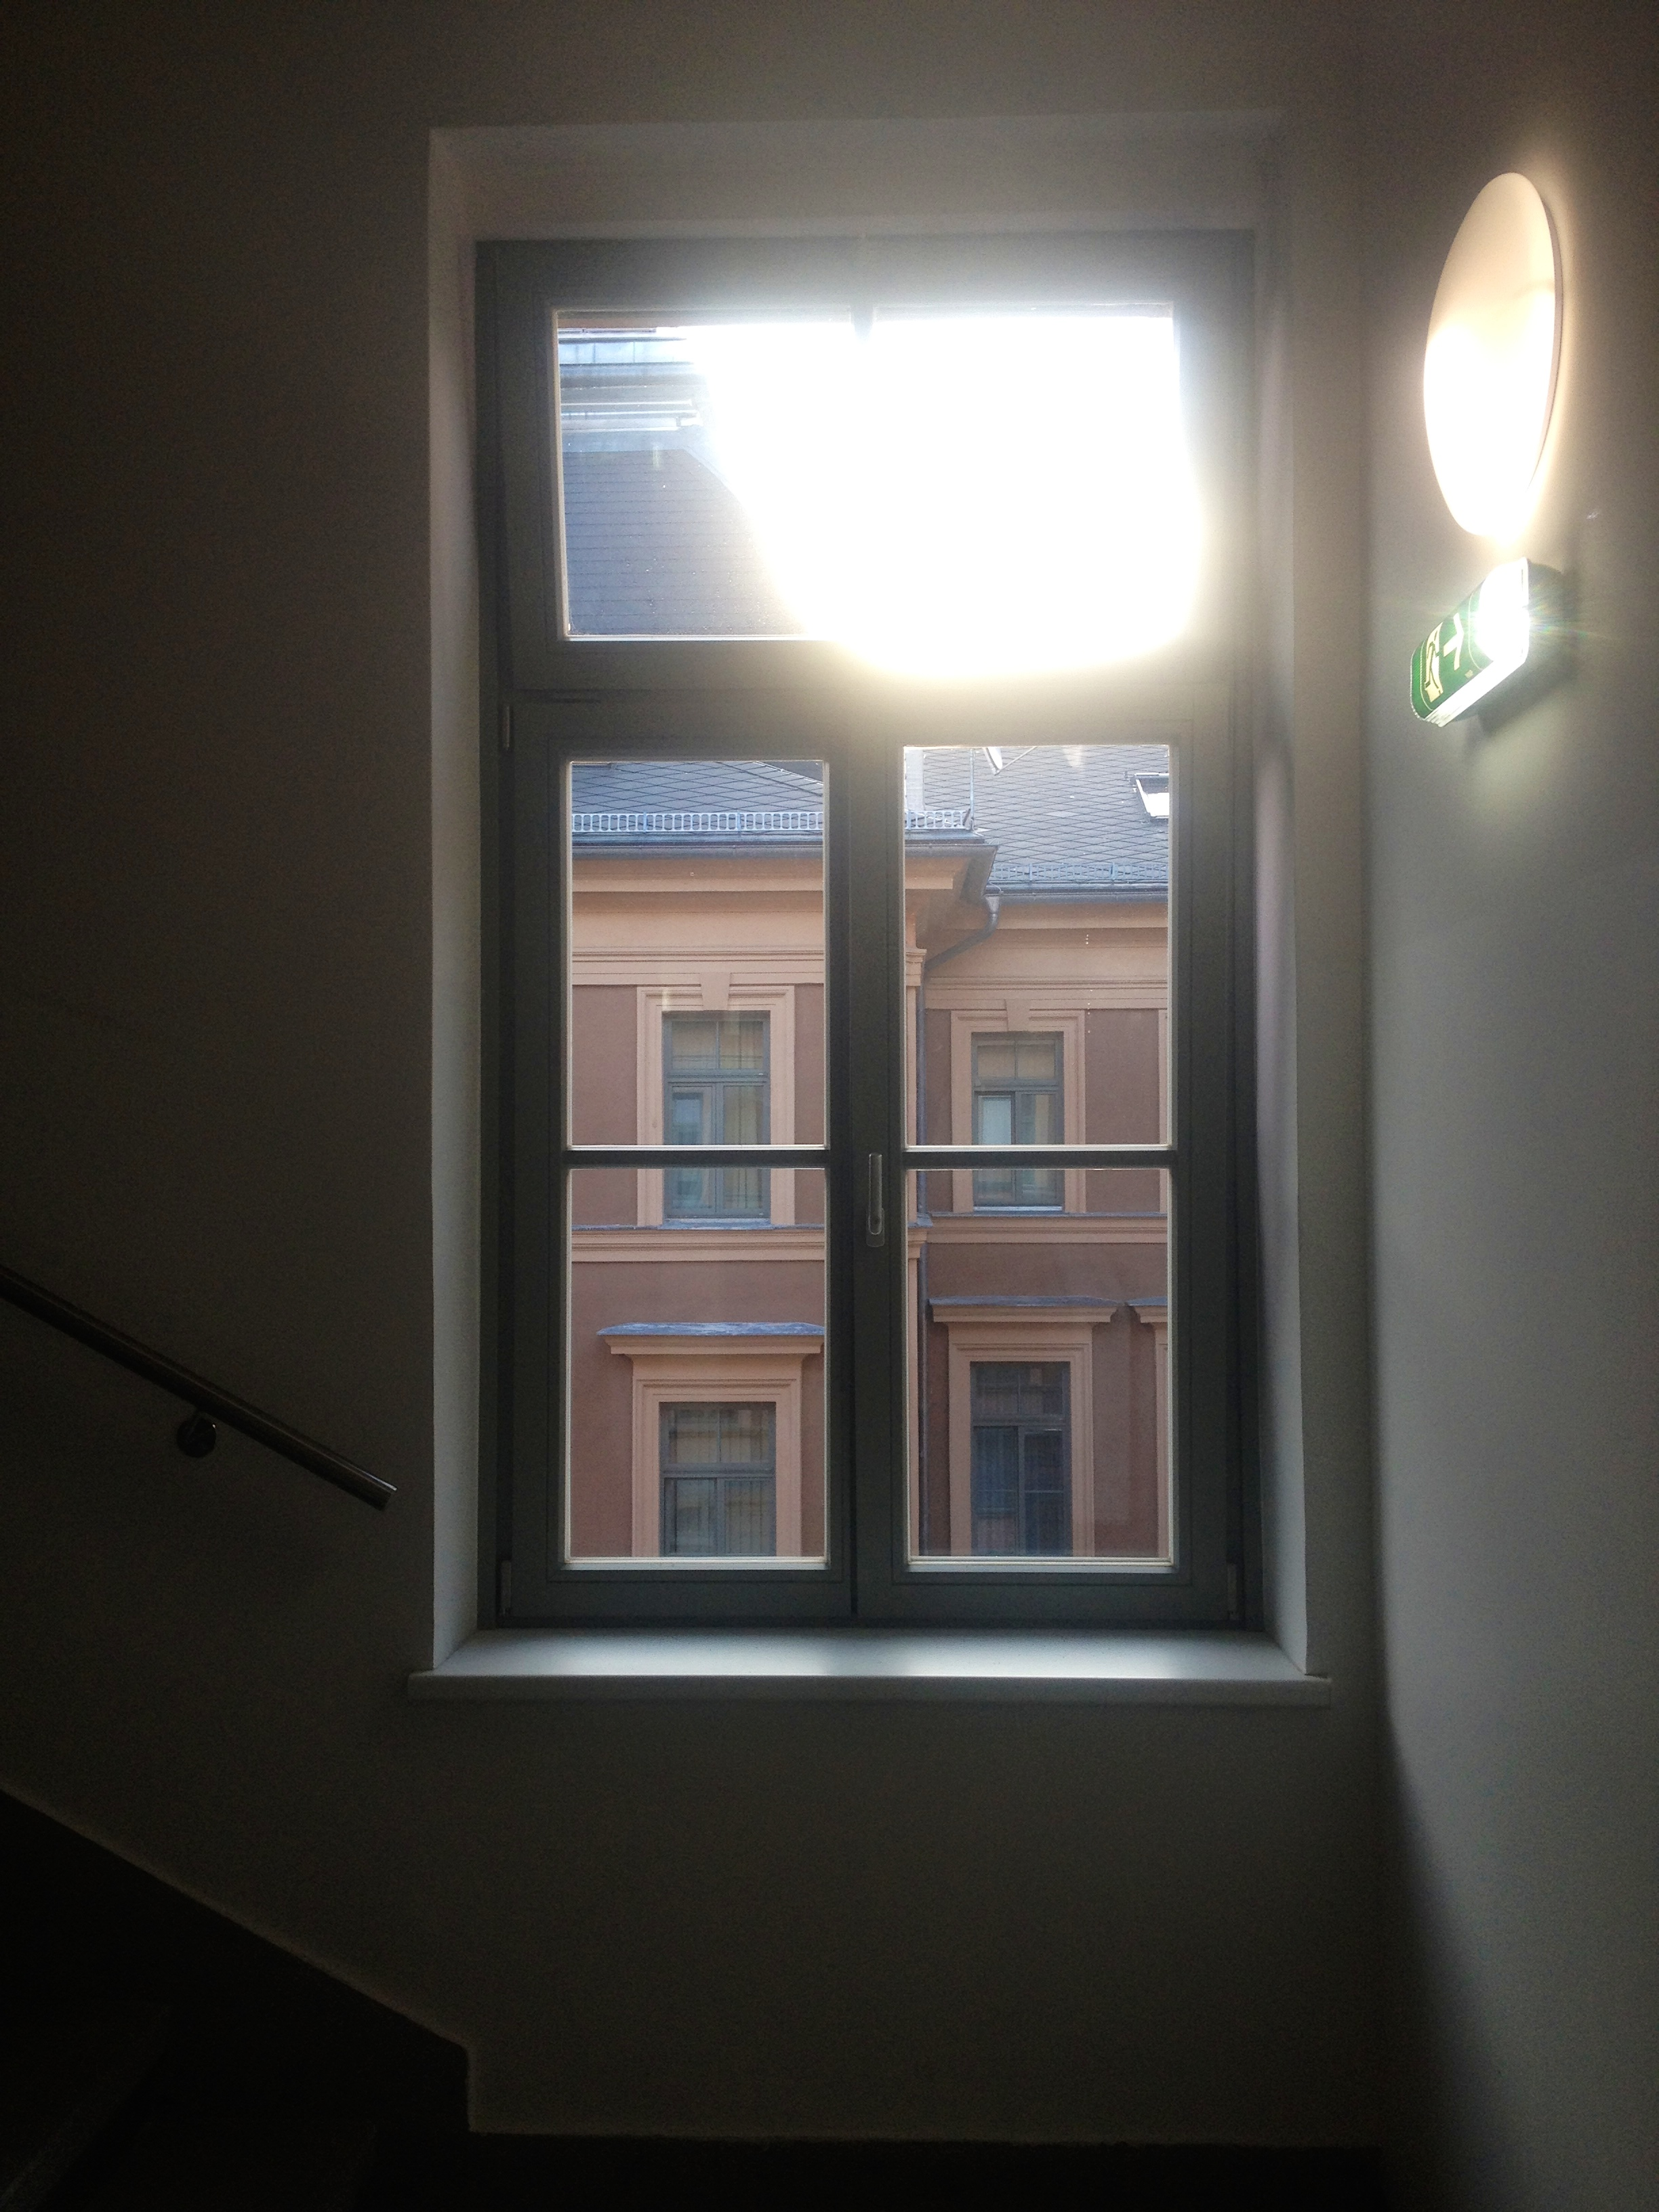 The Tuesday sunrise through the window of the Heim